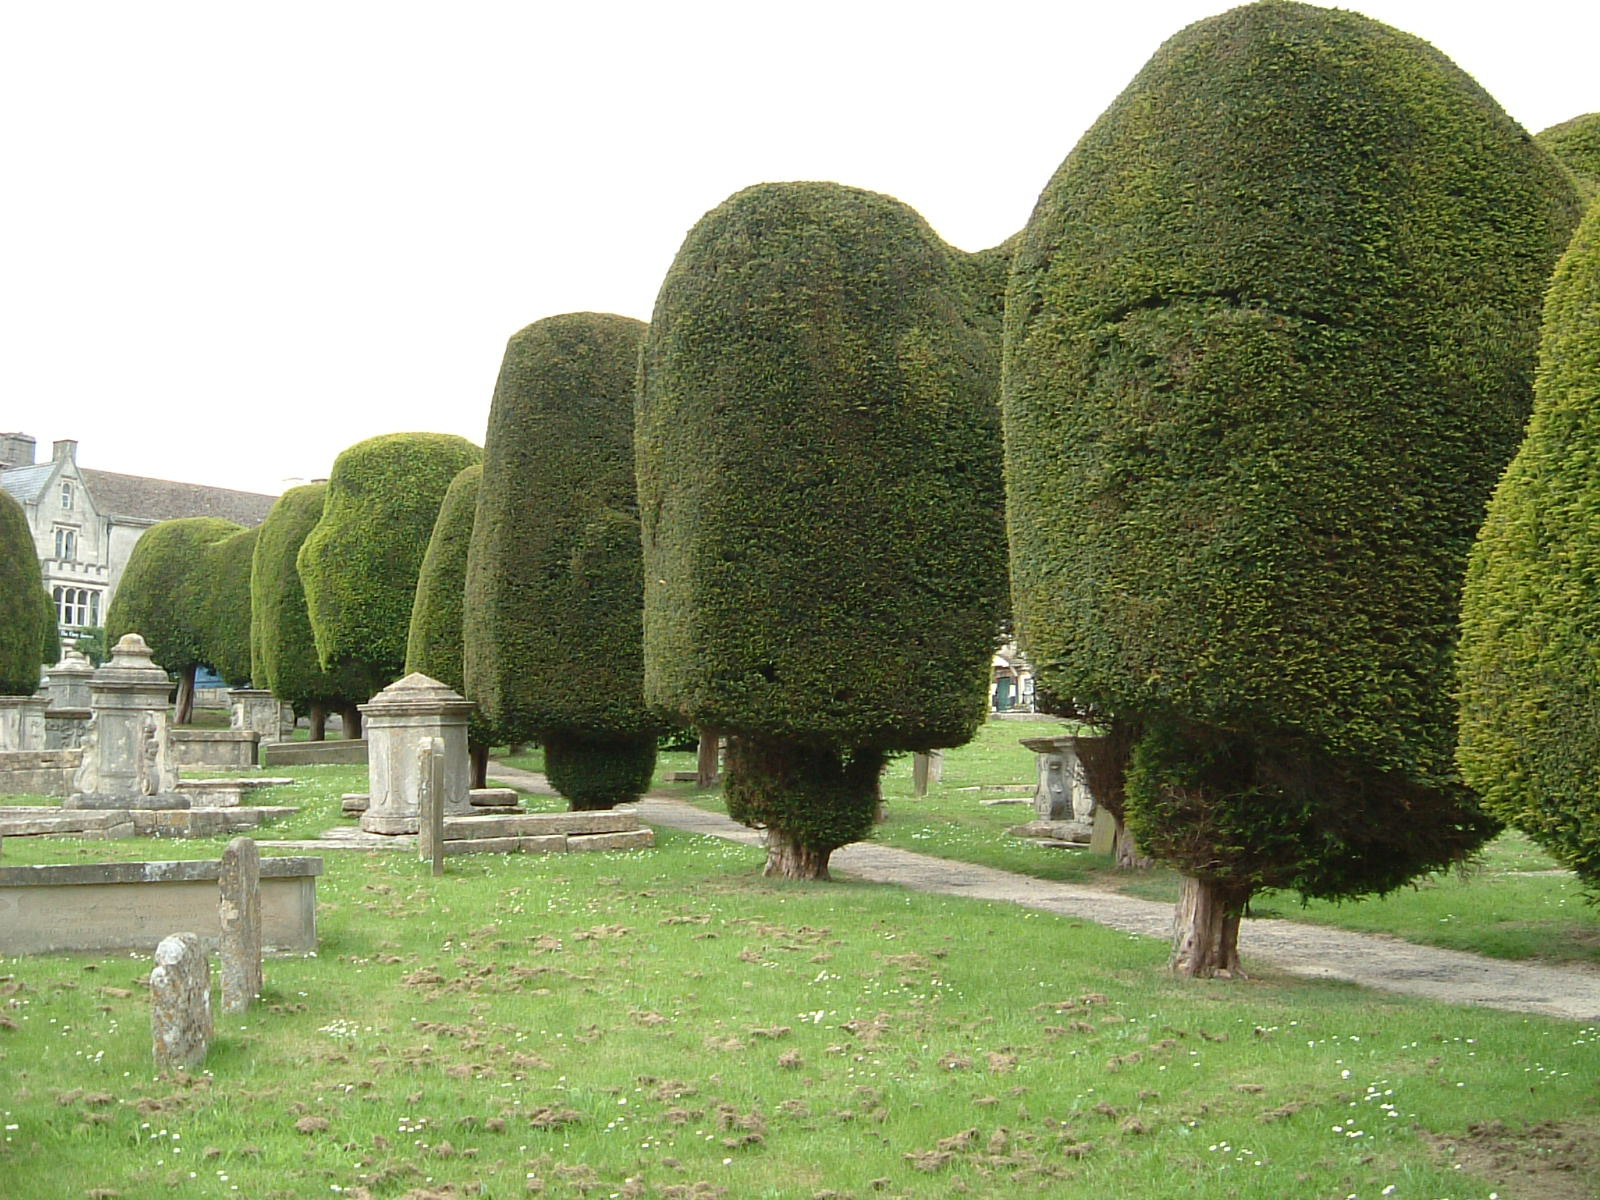 Some of the 99 beautifully crafted yew trees in the churchyard